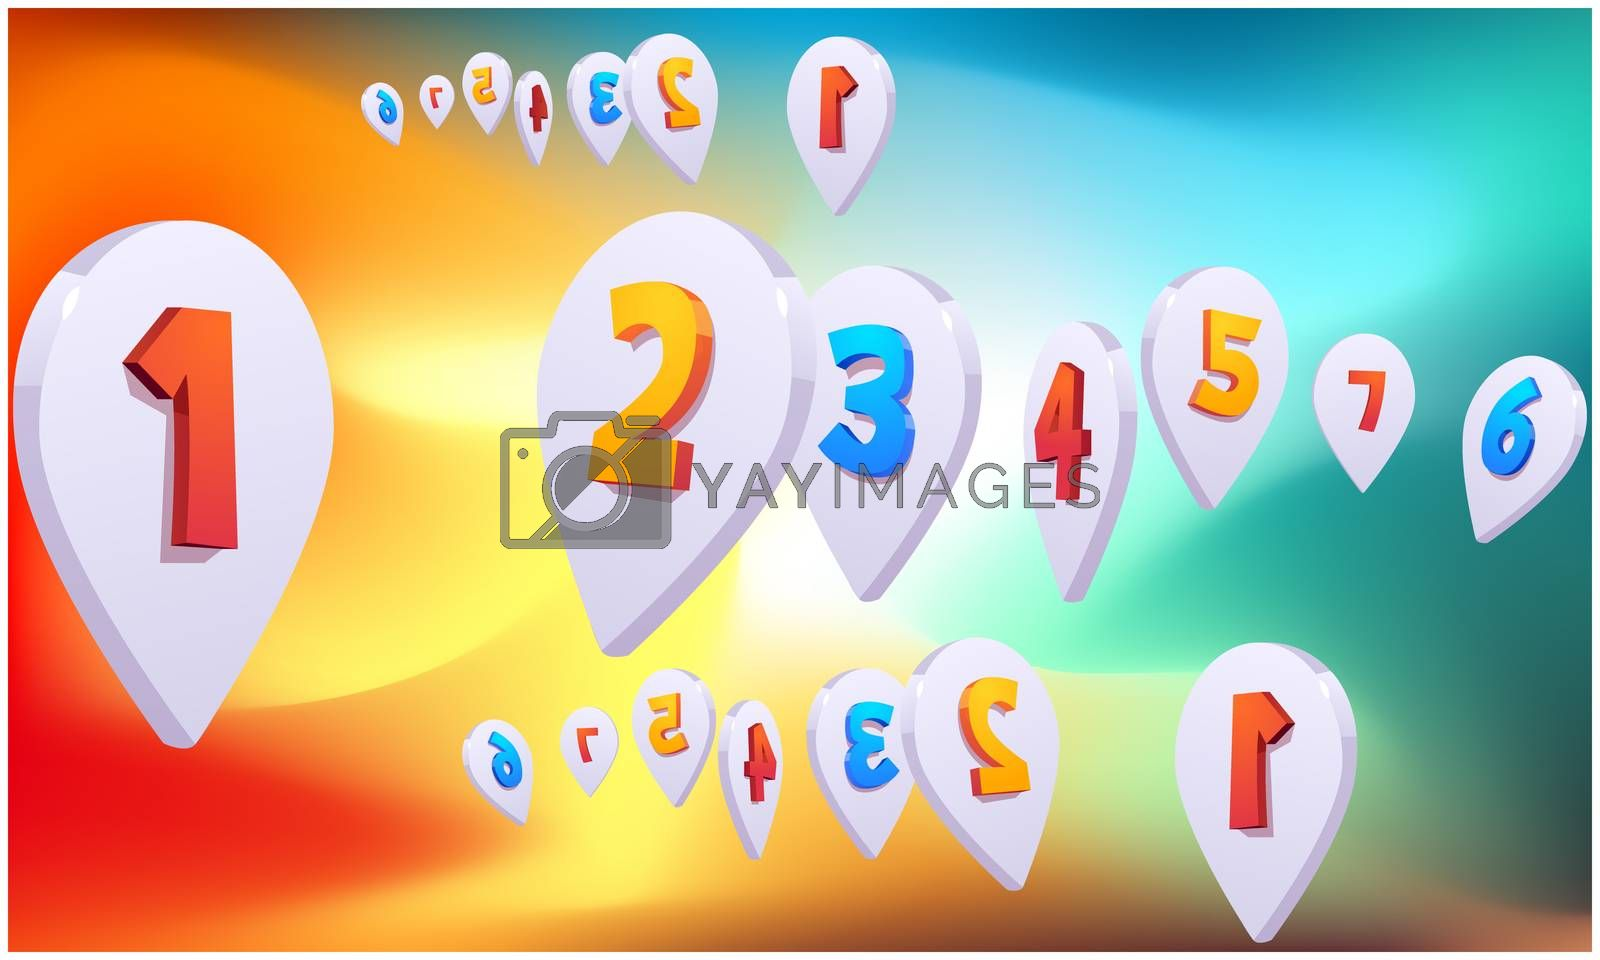 digital textile design of location marks on abstract background